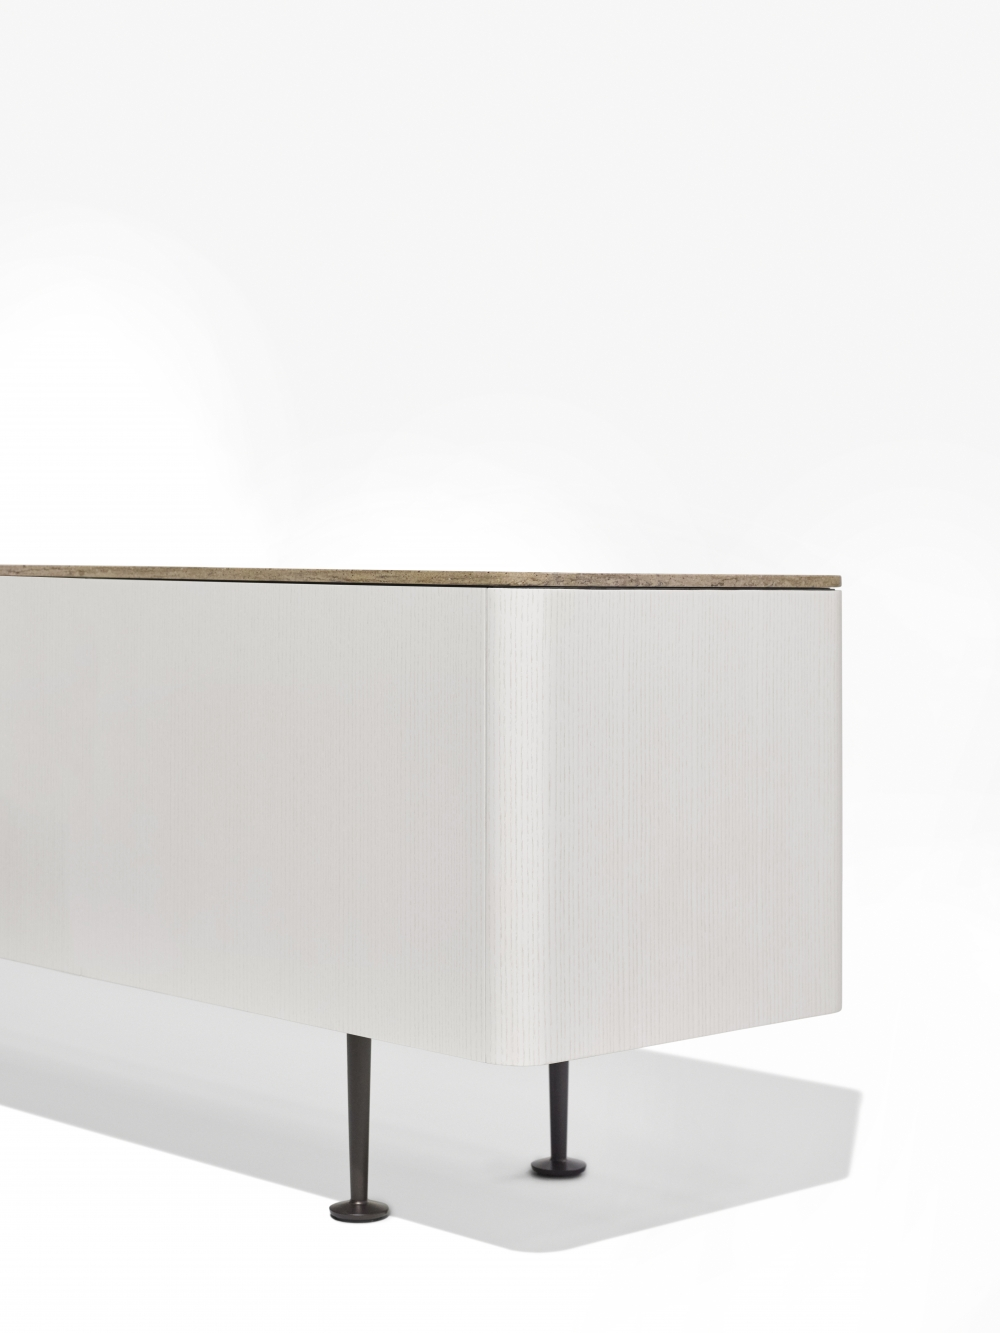 Preview of MYNE | Credenza | M44 Blanco Veneer | Riverbed Corian Top | Aged Bronze Powdercoat Legs | Edge Detail